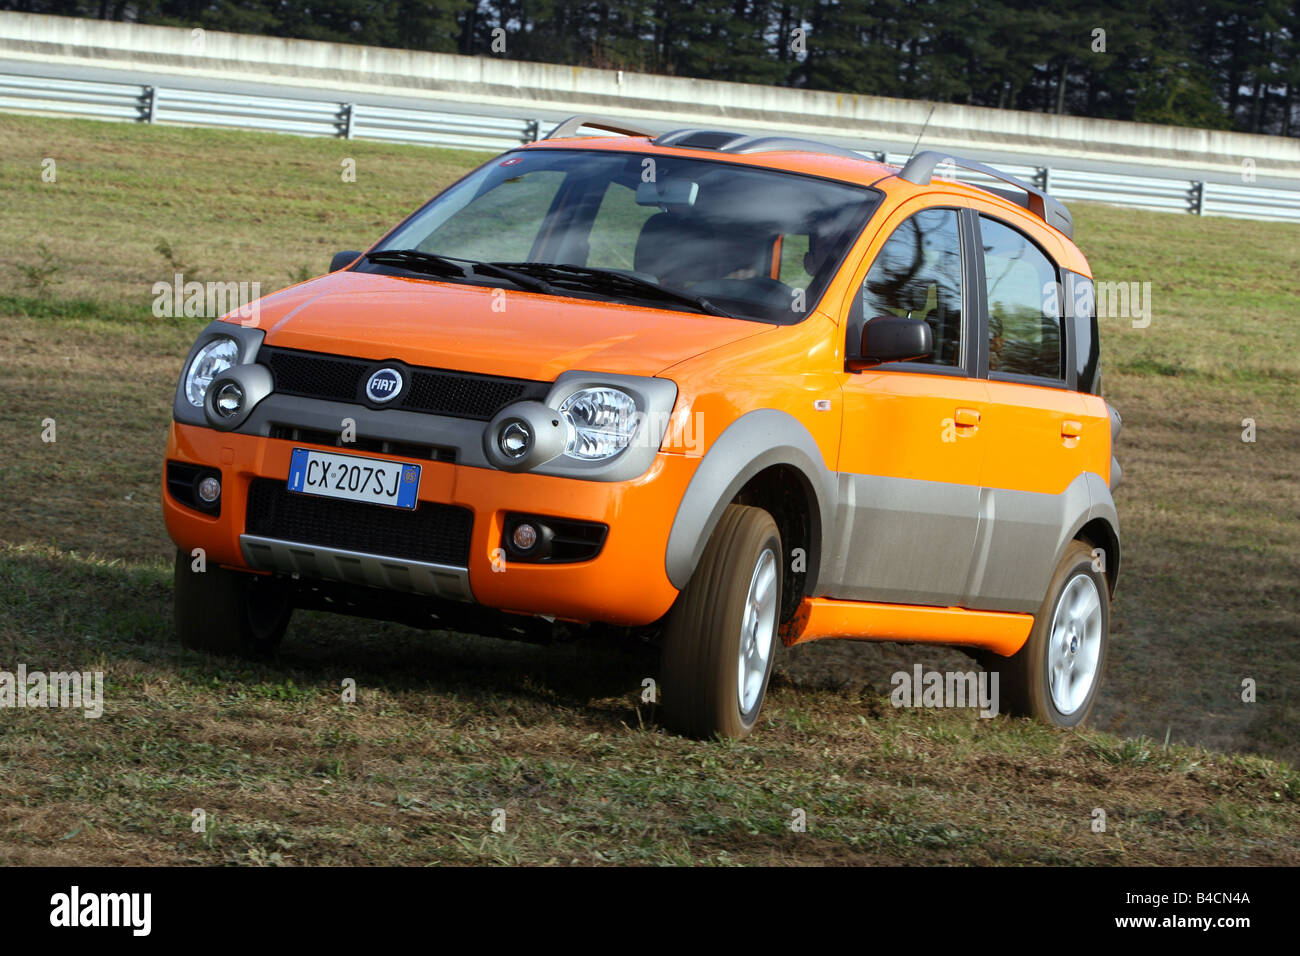 fiat panda 4x4 stock photos fiat panda 4x4 stock images. Black Bedroom Furniture Sets. Home Design Ideas